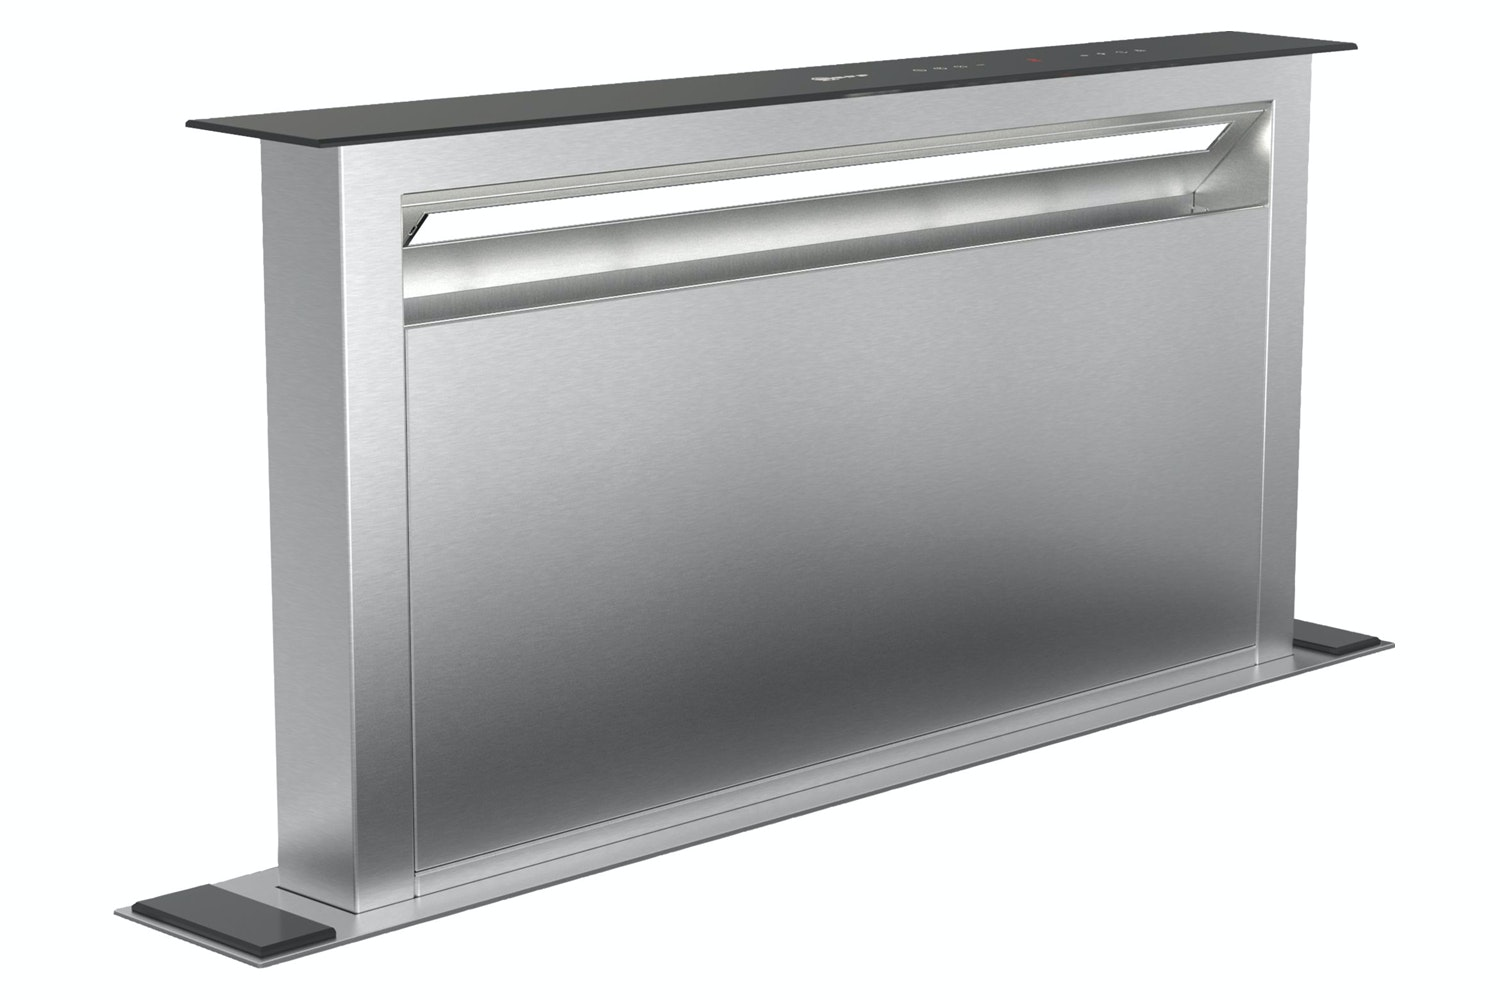 Neff 90cm Downdraft Hood | I99L59N0GB